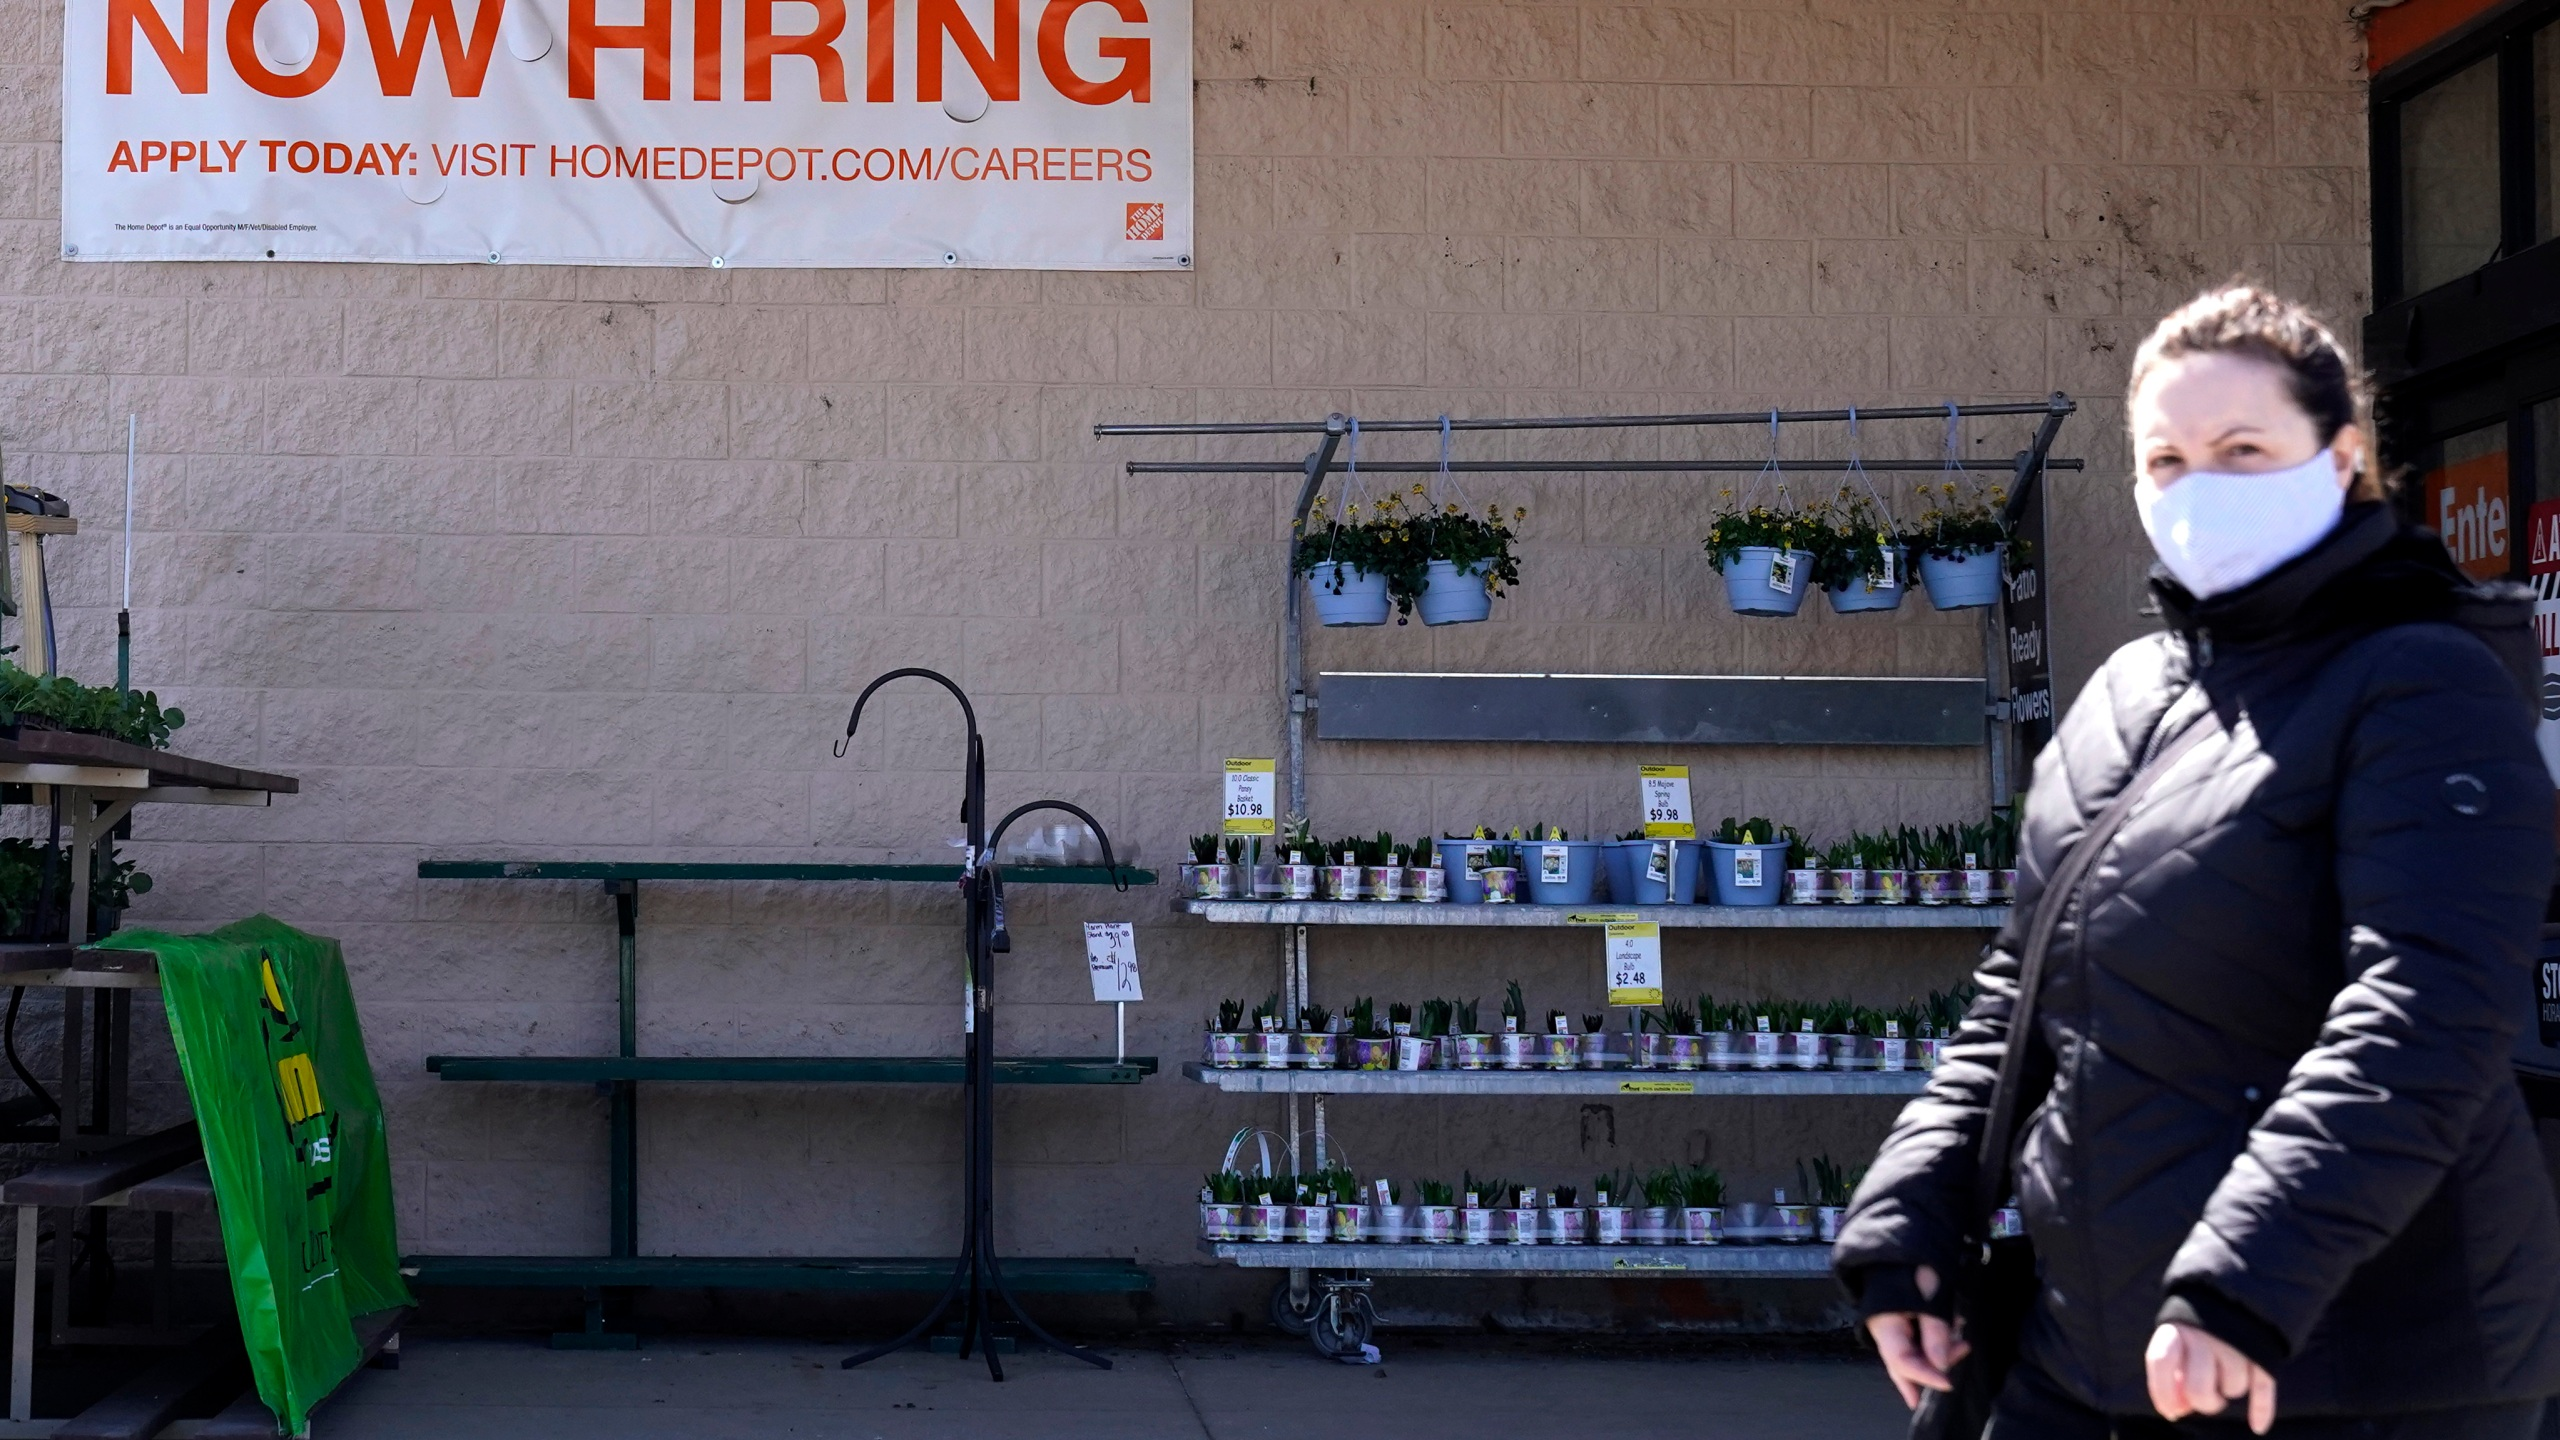 A hiring sign is seen outside home improvement store in Mount Prospect, Ill., Friday, April 2, 2021. America's employers unleashed a burst of hiring in March, adding 916,000 jobs in a sign that a sustained recovery from the pandemic recession is taking hold as vaccinations accelerate, stimulus checks flow through the economy and businesses increasingly reopen. (AP Photo/Nam Y. Huh)